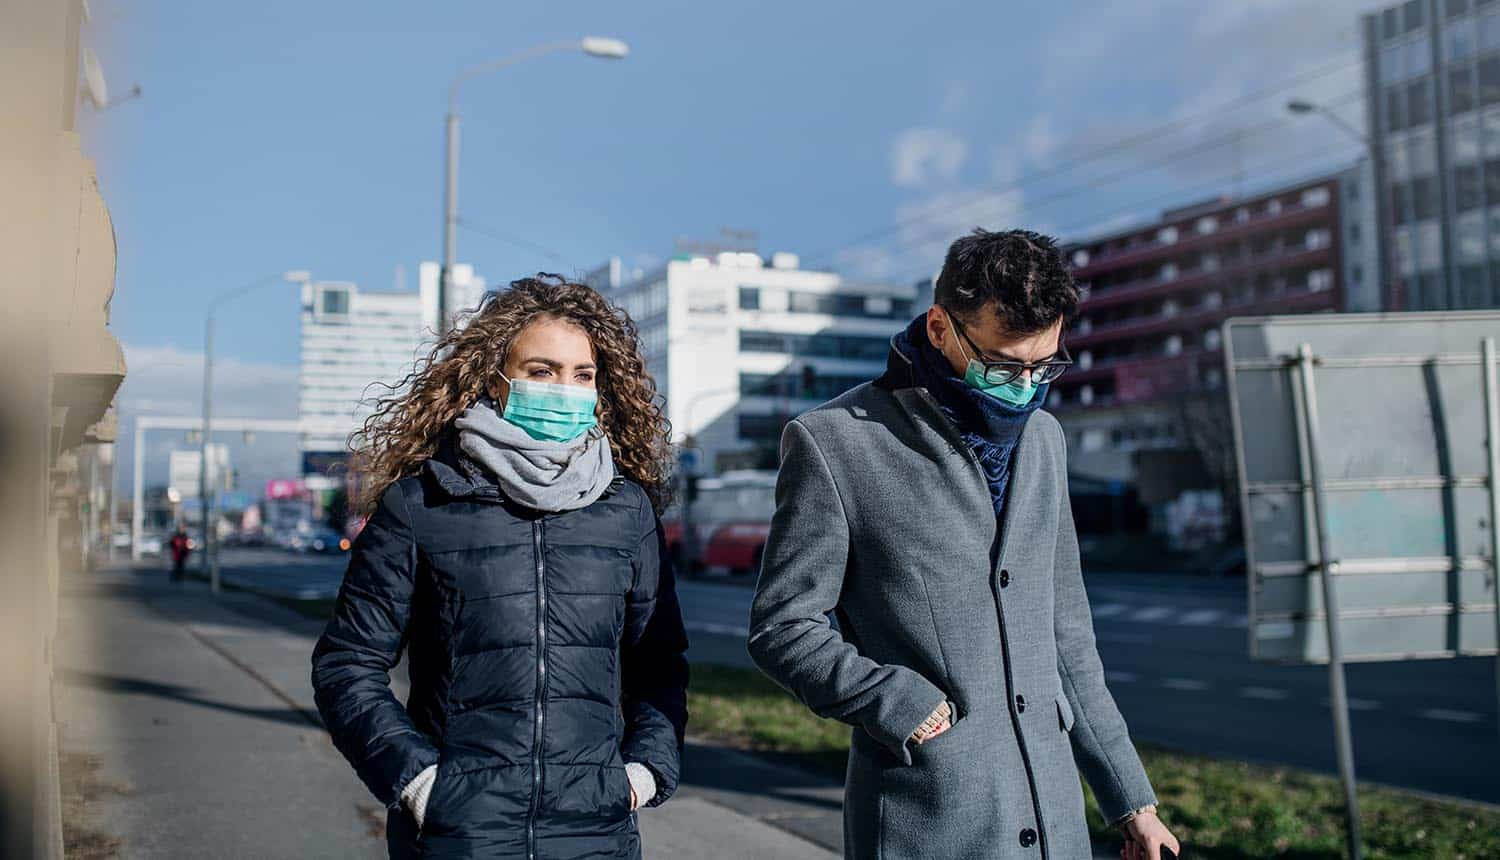 Man and woman wearing face masks on street showing the importance of ethical data privacy in time of COVID-19